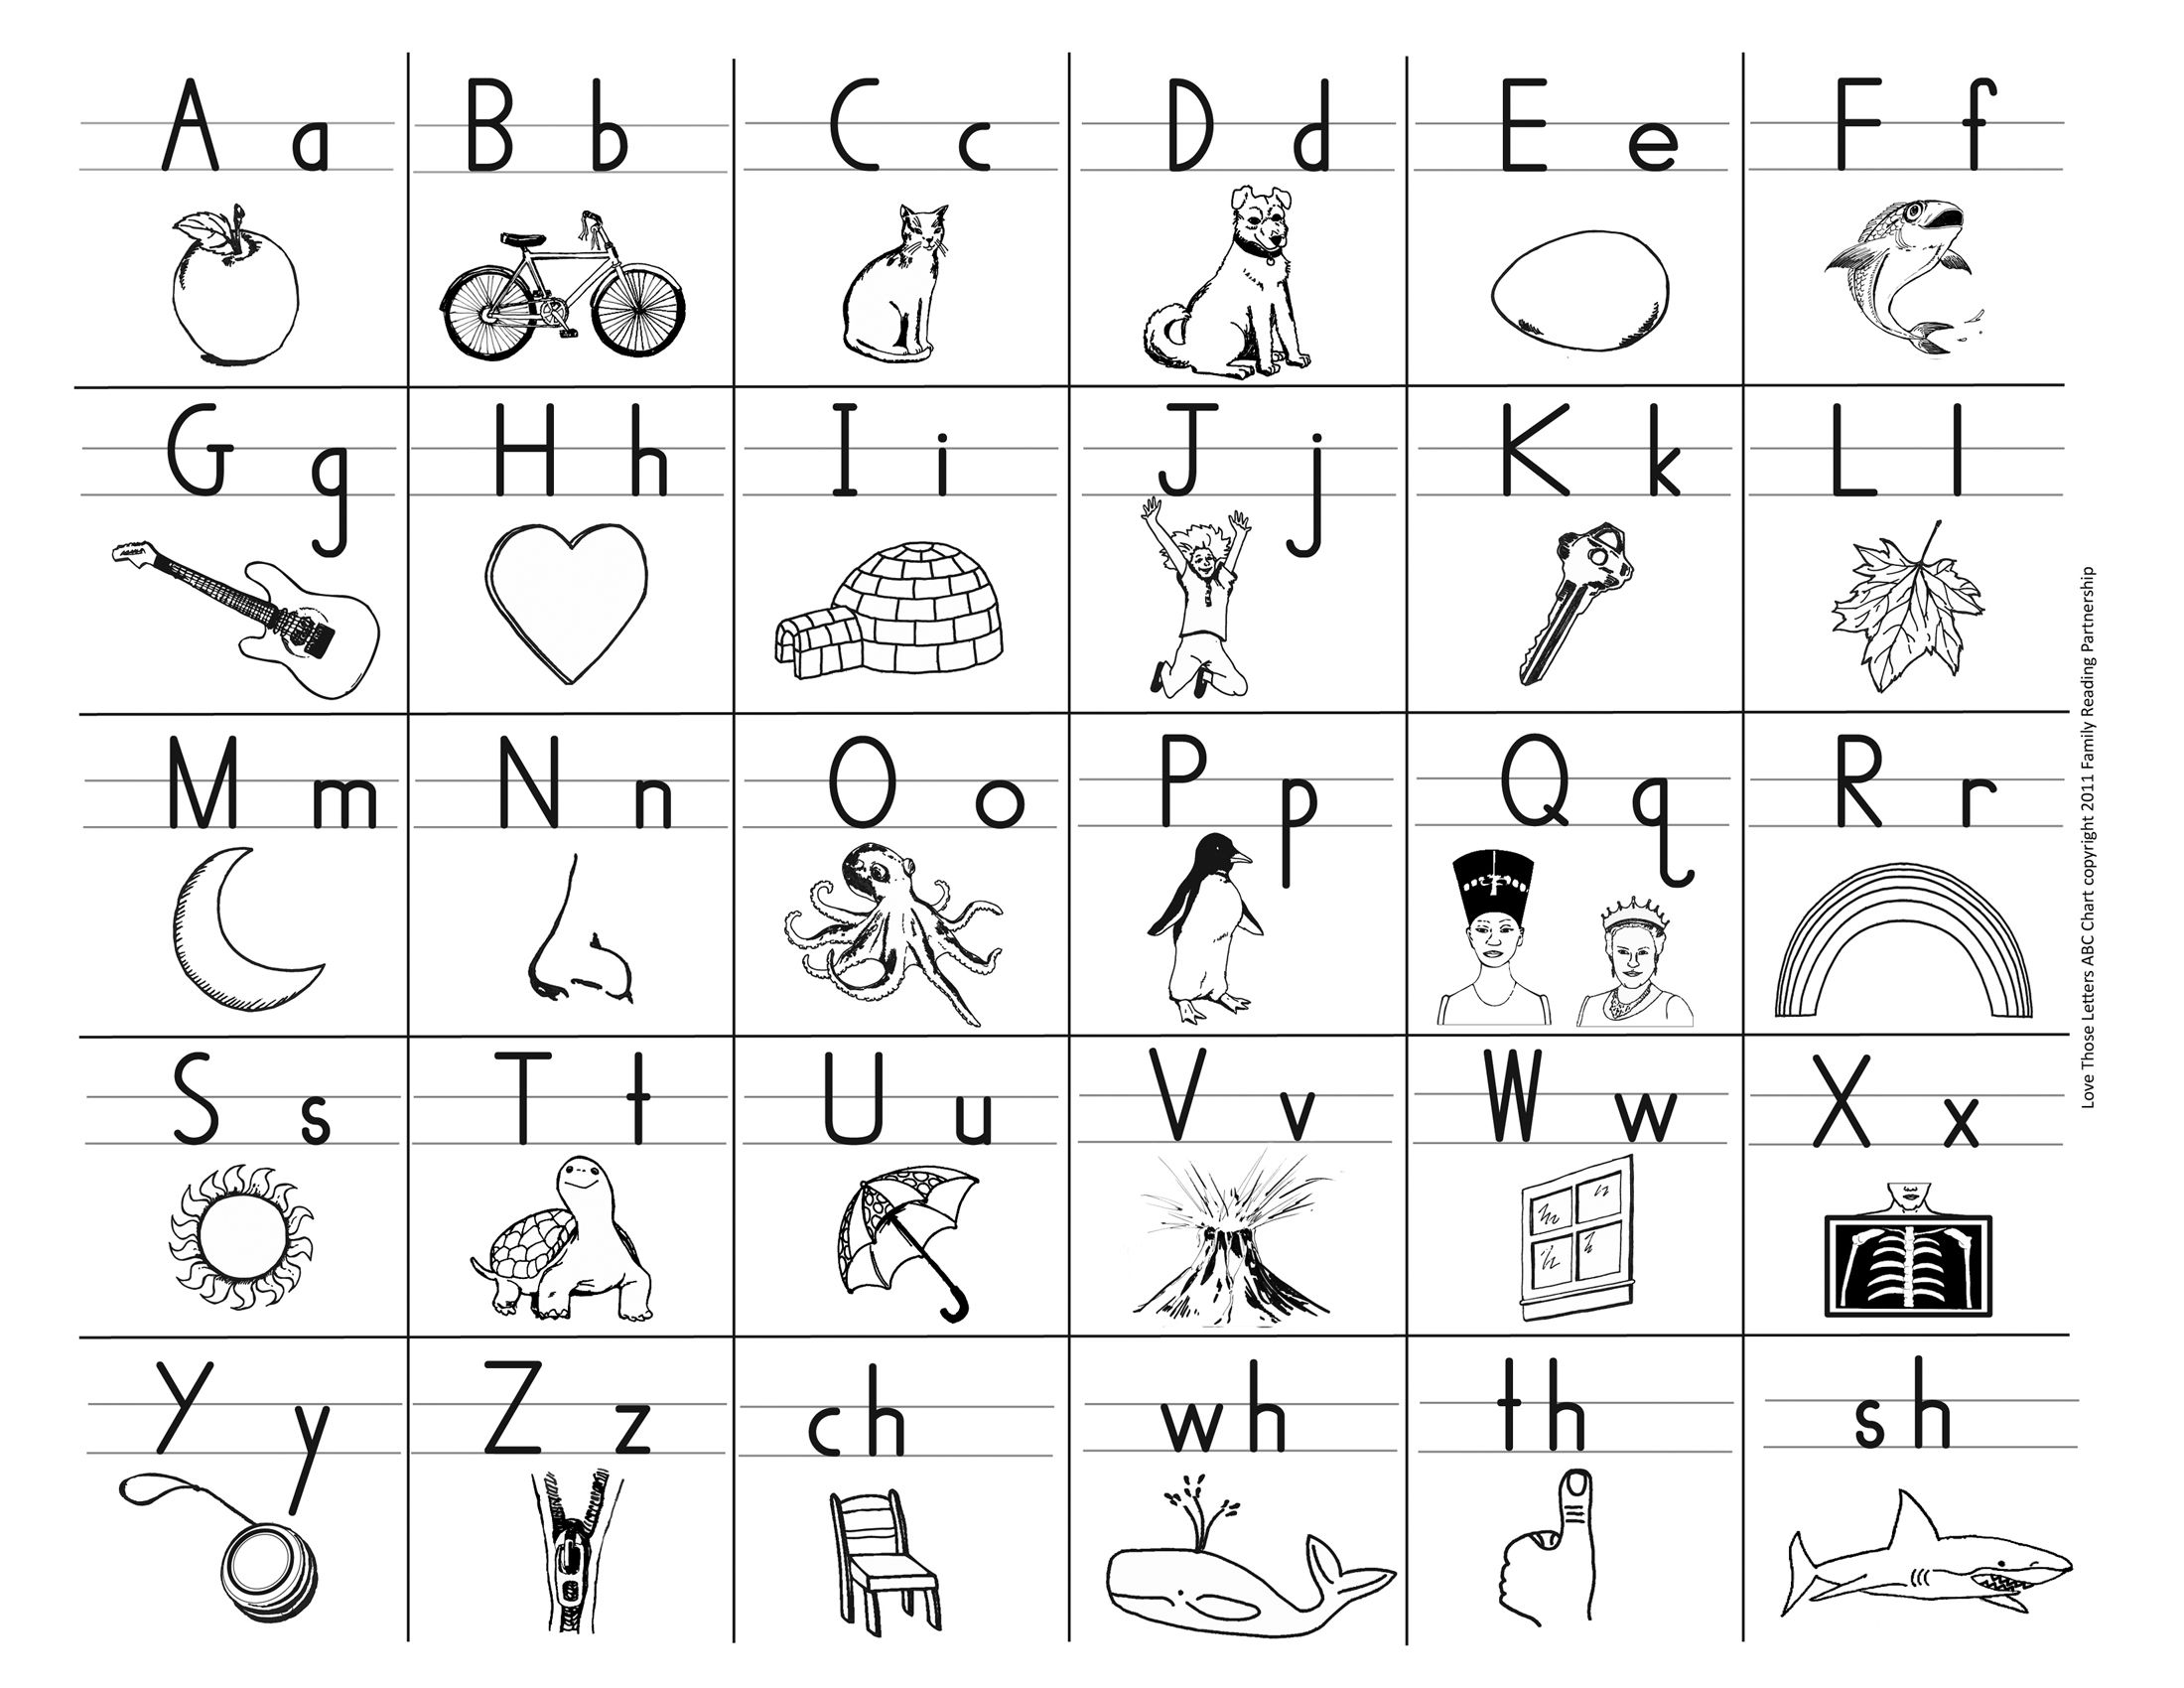 Ltl Black And White Abc Chart To Download